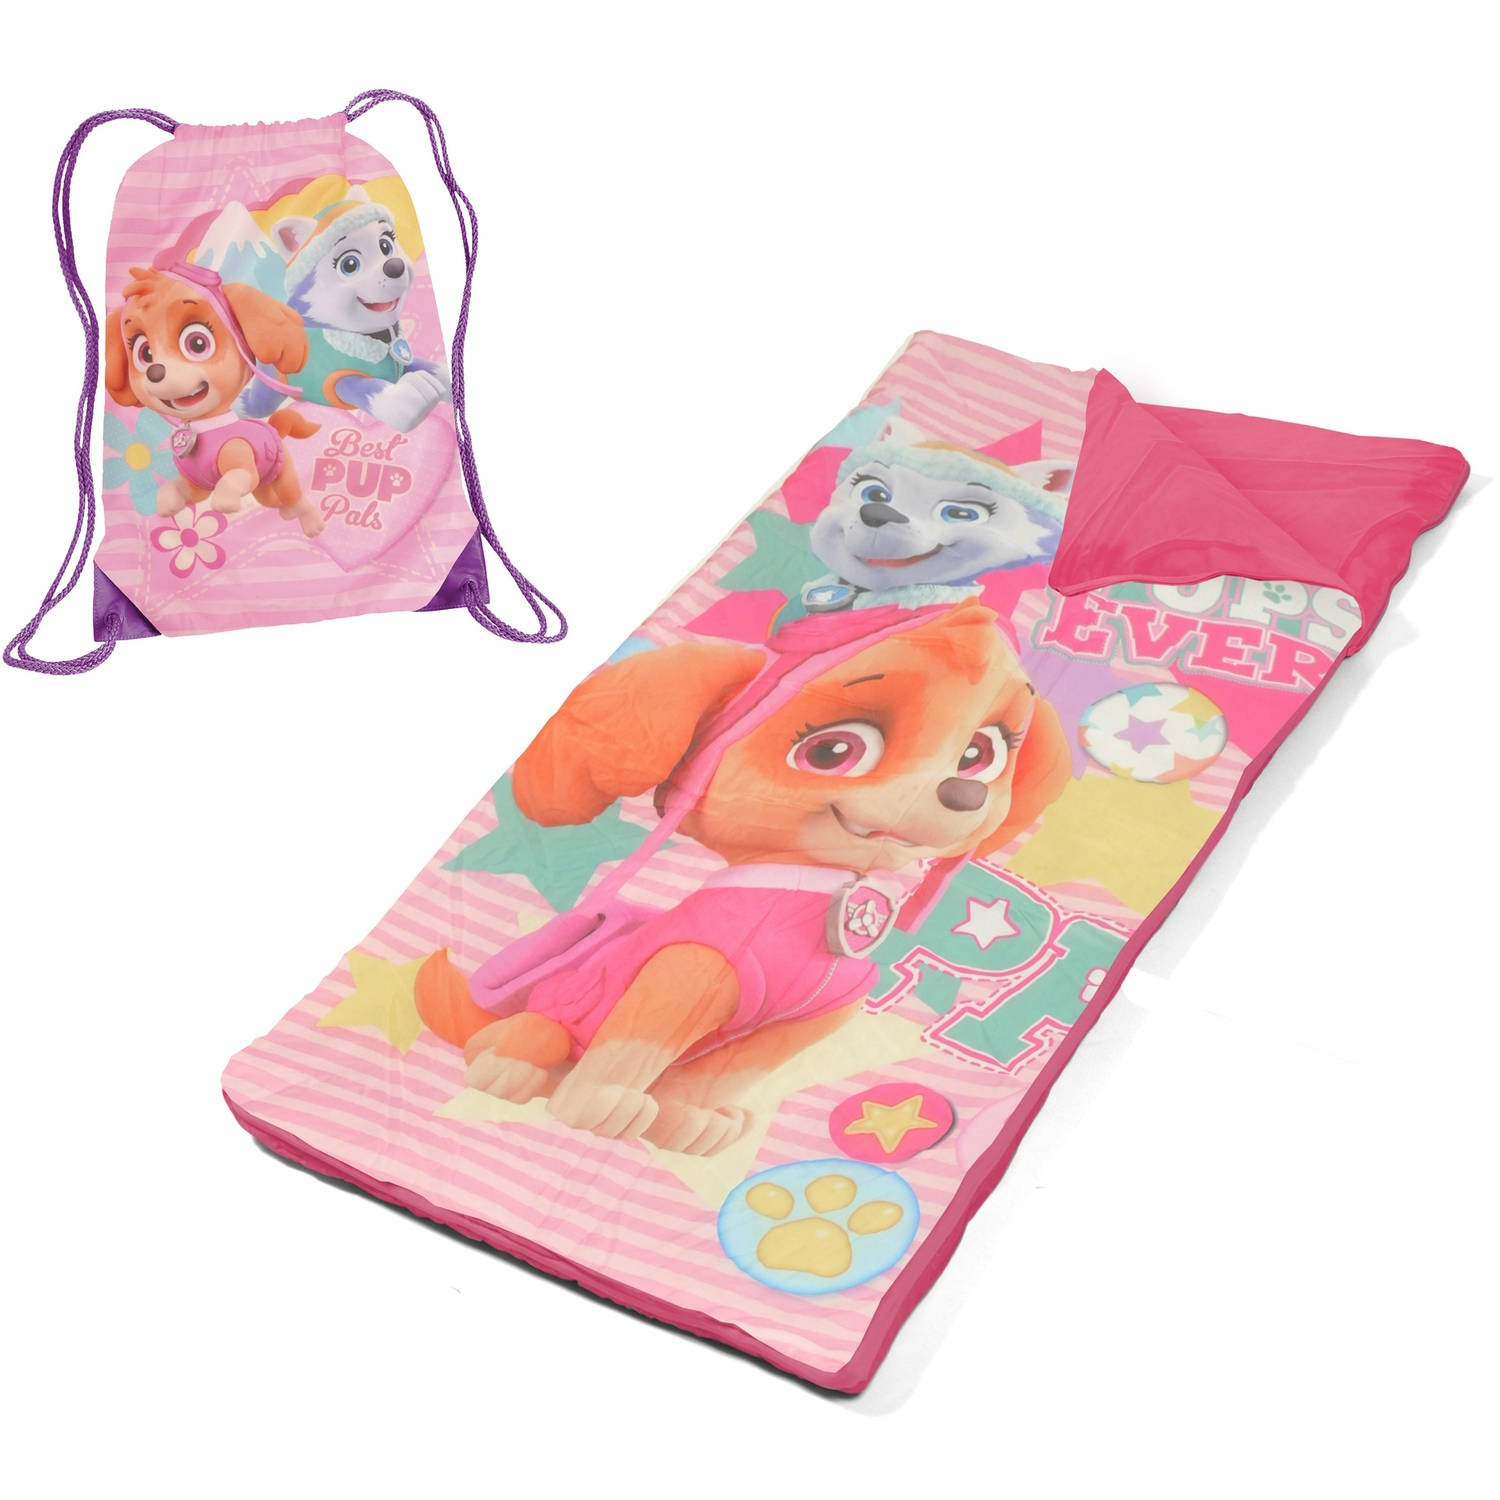 L&M Kids Girls Pink Nickelodeon Paw Patrol Themed Nap Mat Set, Skye Everest Cartoon Characters Cockapoo Husky Puppy Dog Motif Slumber Set, Fuchsia Yellow Green Light Travel Bed Roll, Polyester